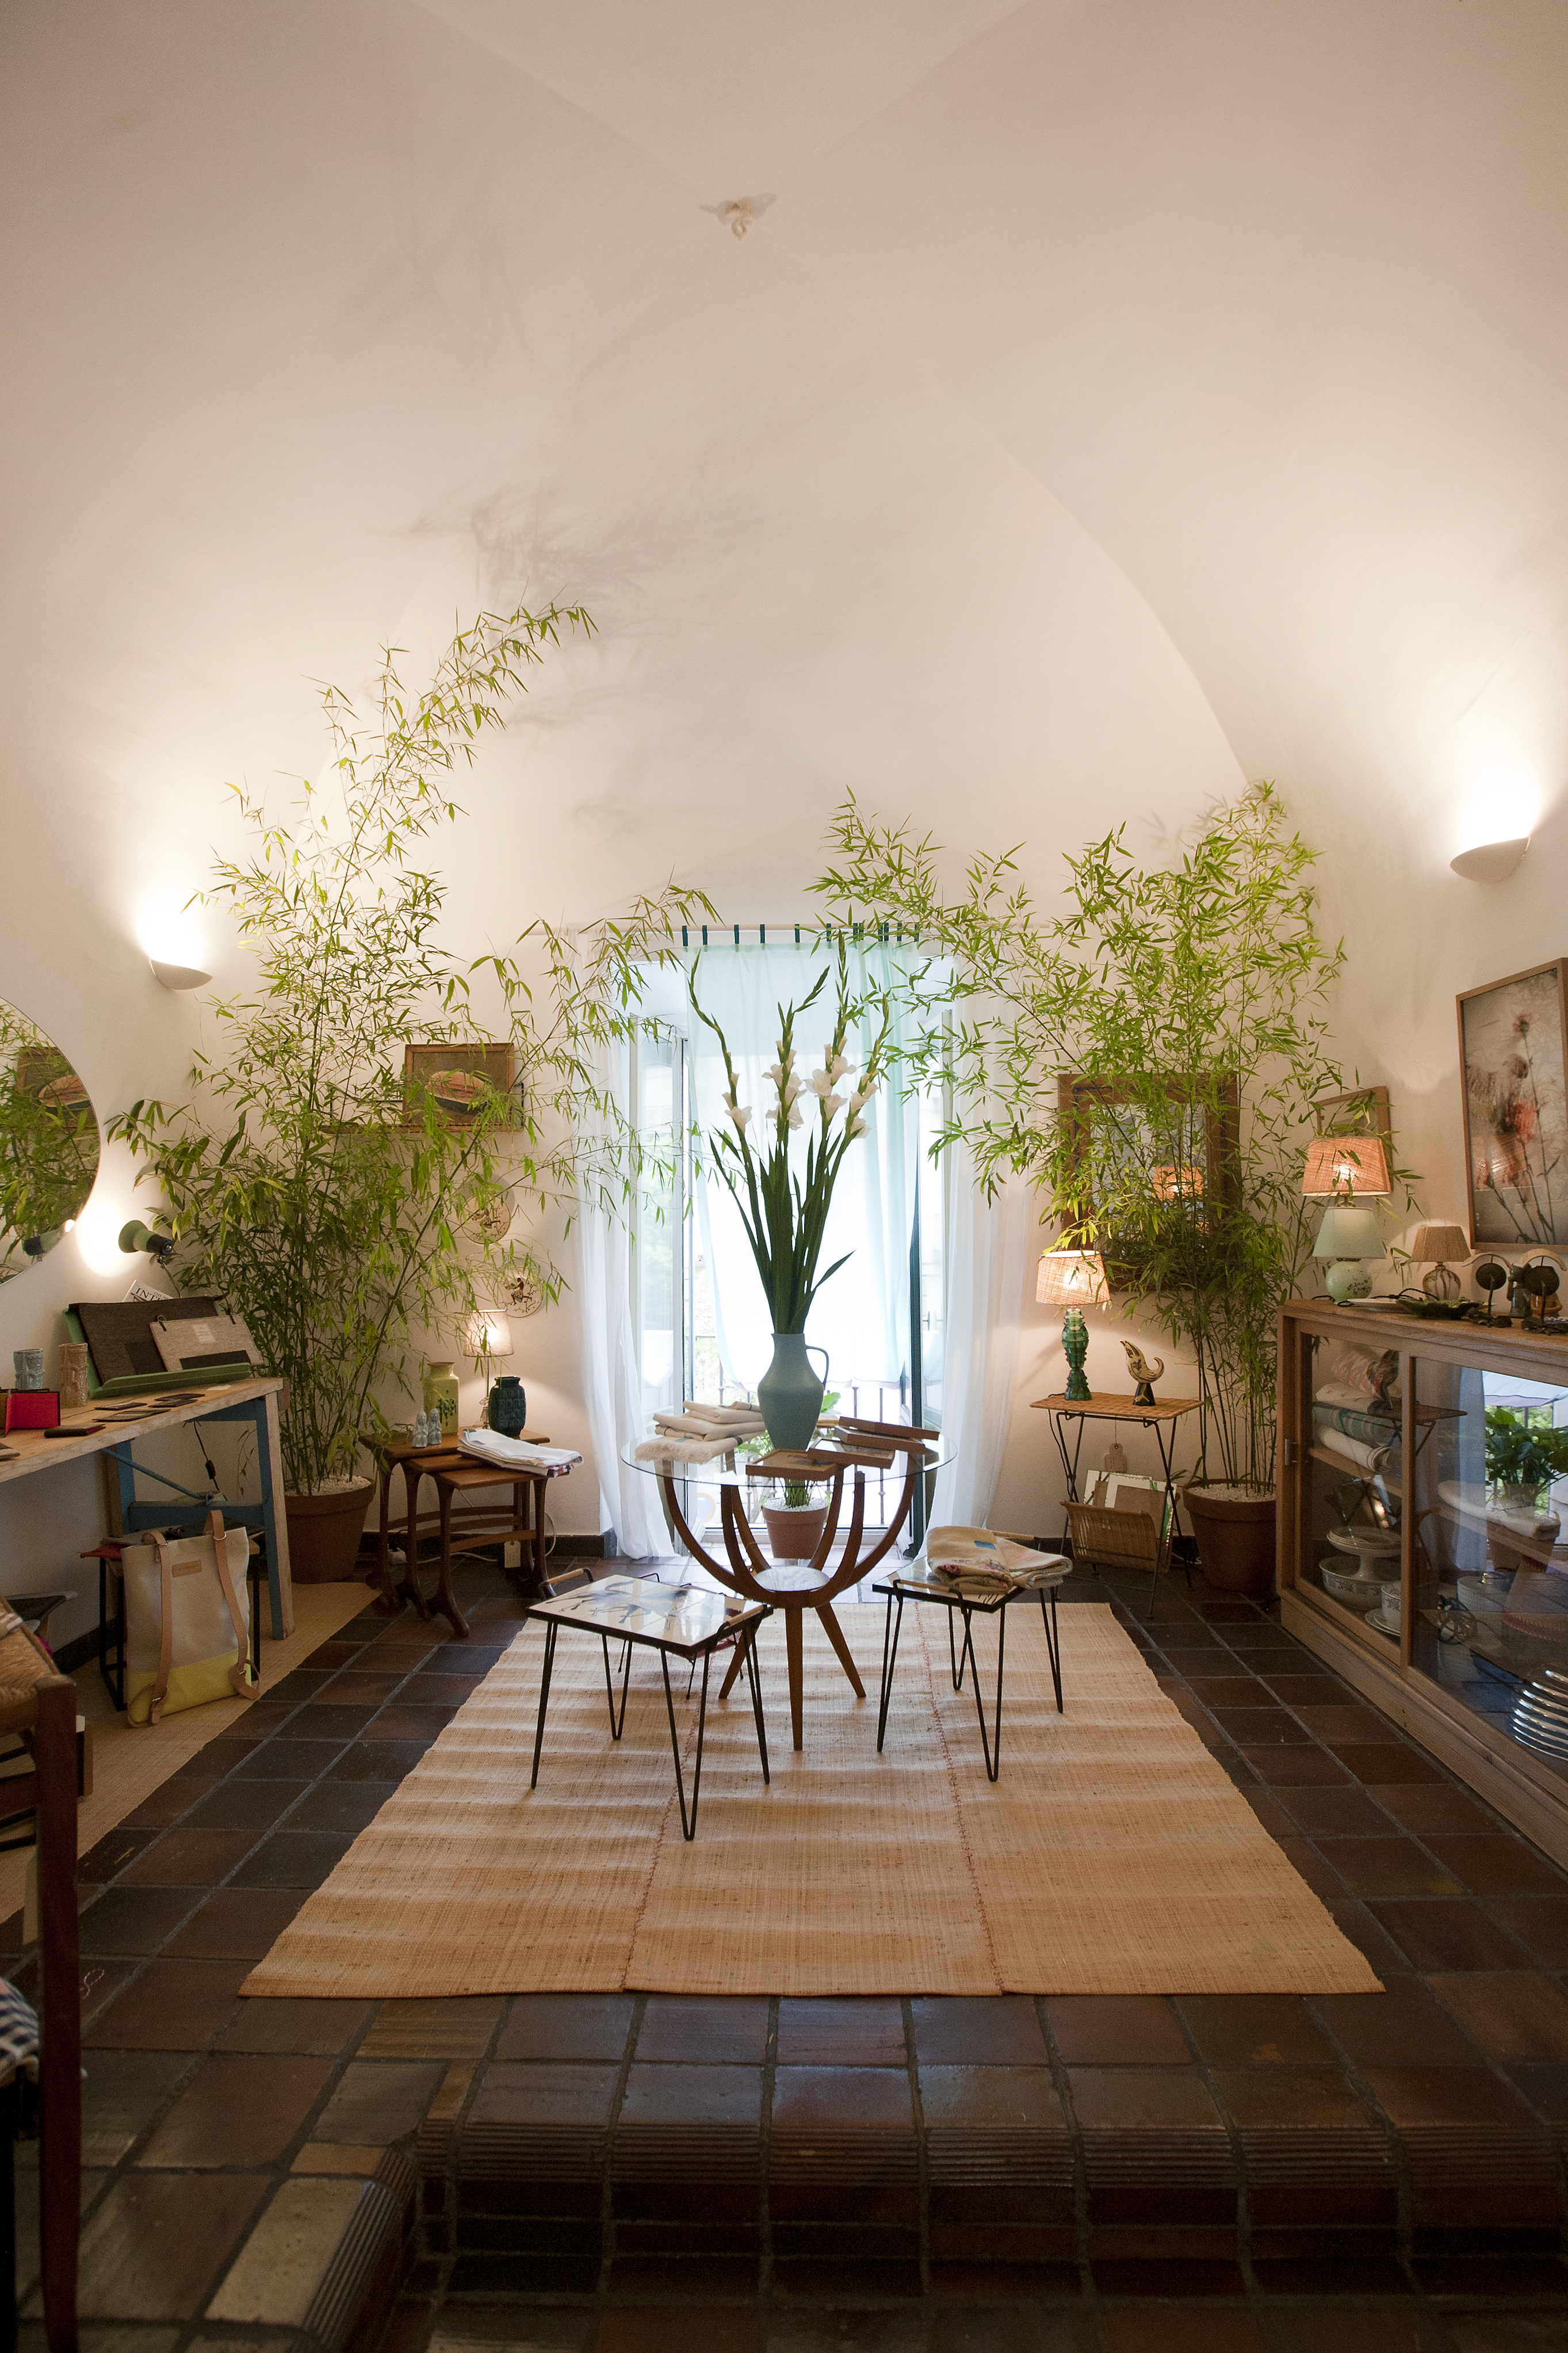 Casa josephine pop up store smartvolta conscious living healthy lifestyle for digital nomads - Casa josephine ...